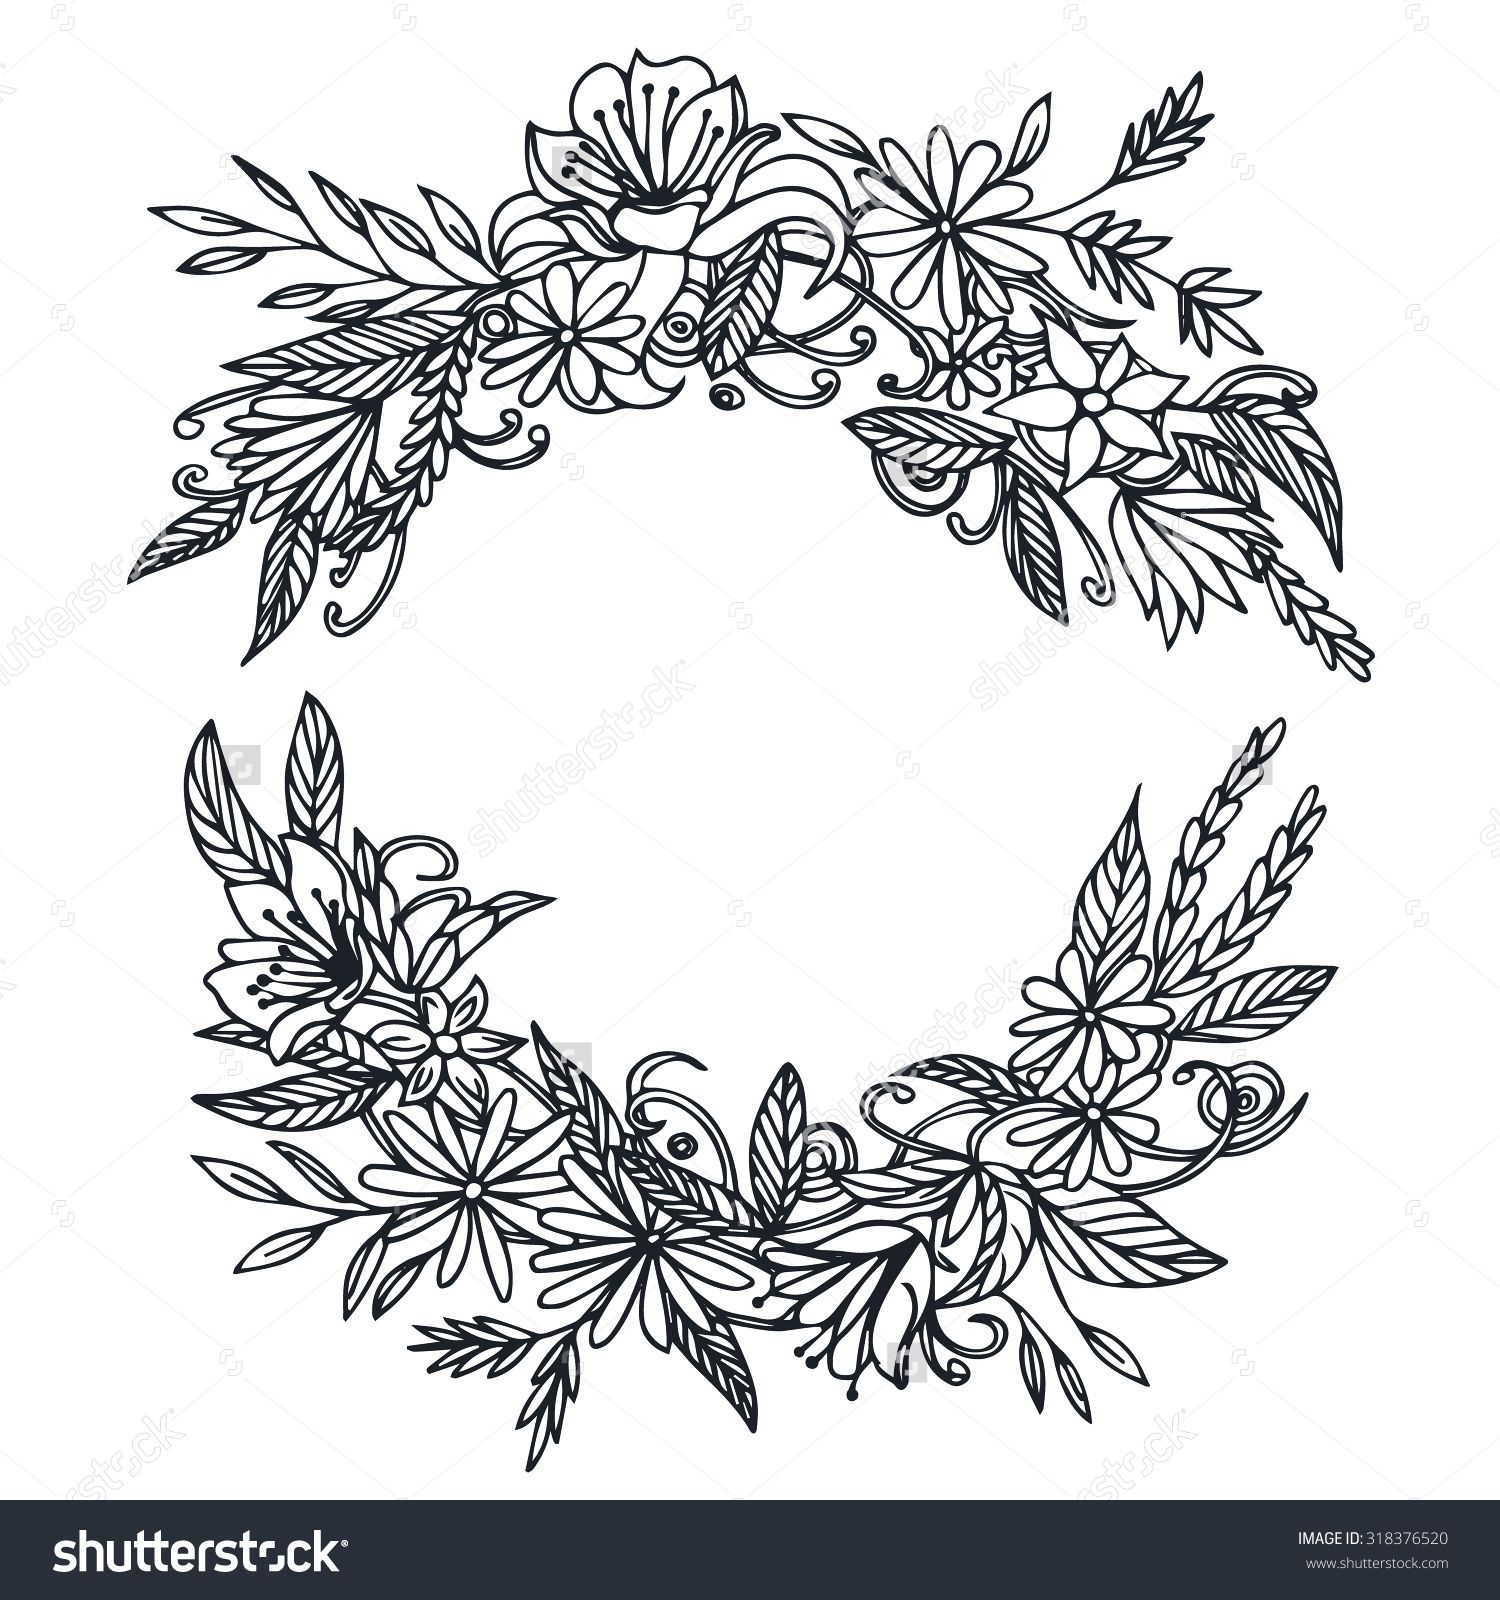 Vector Vintage Round Frame With Flowers. Floral Wreath